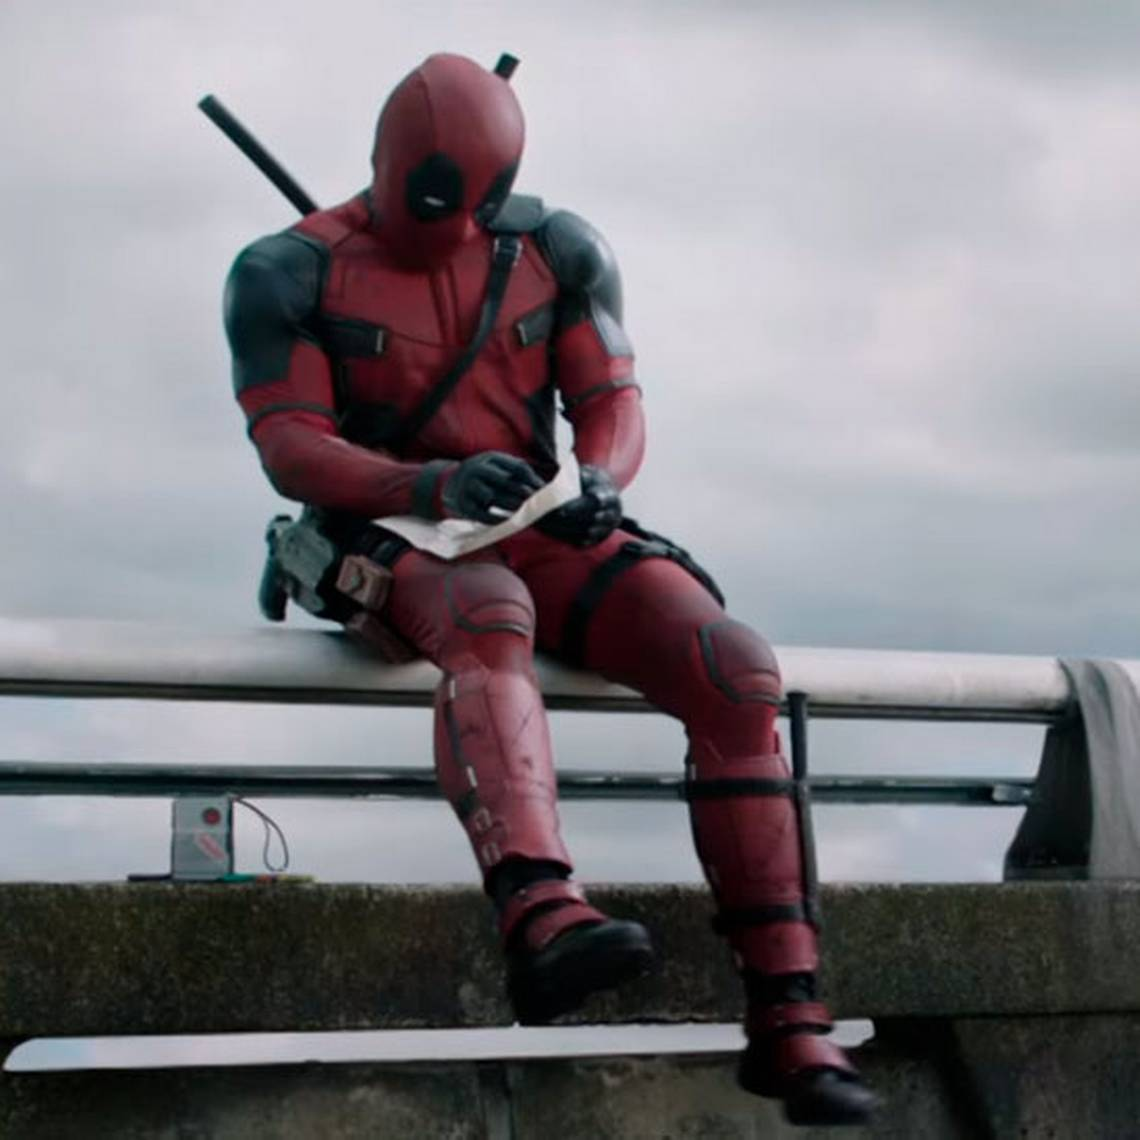 Doble de acción falleció en plena grabación de Deadpool 2